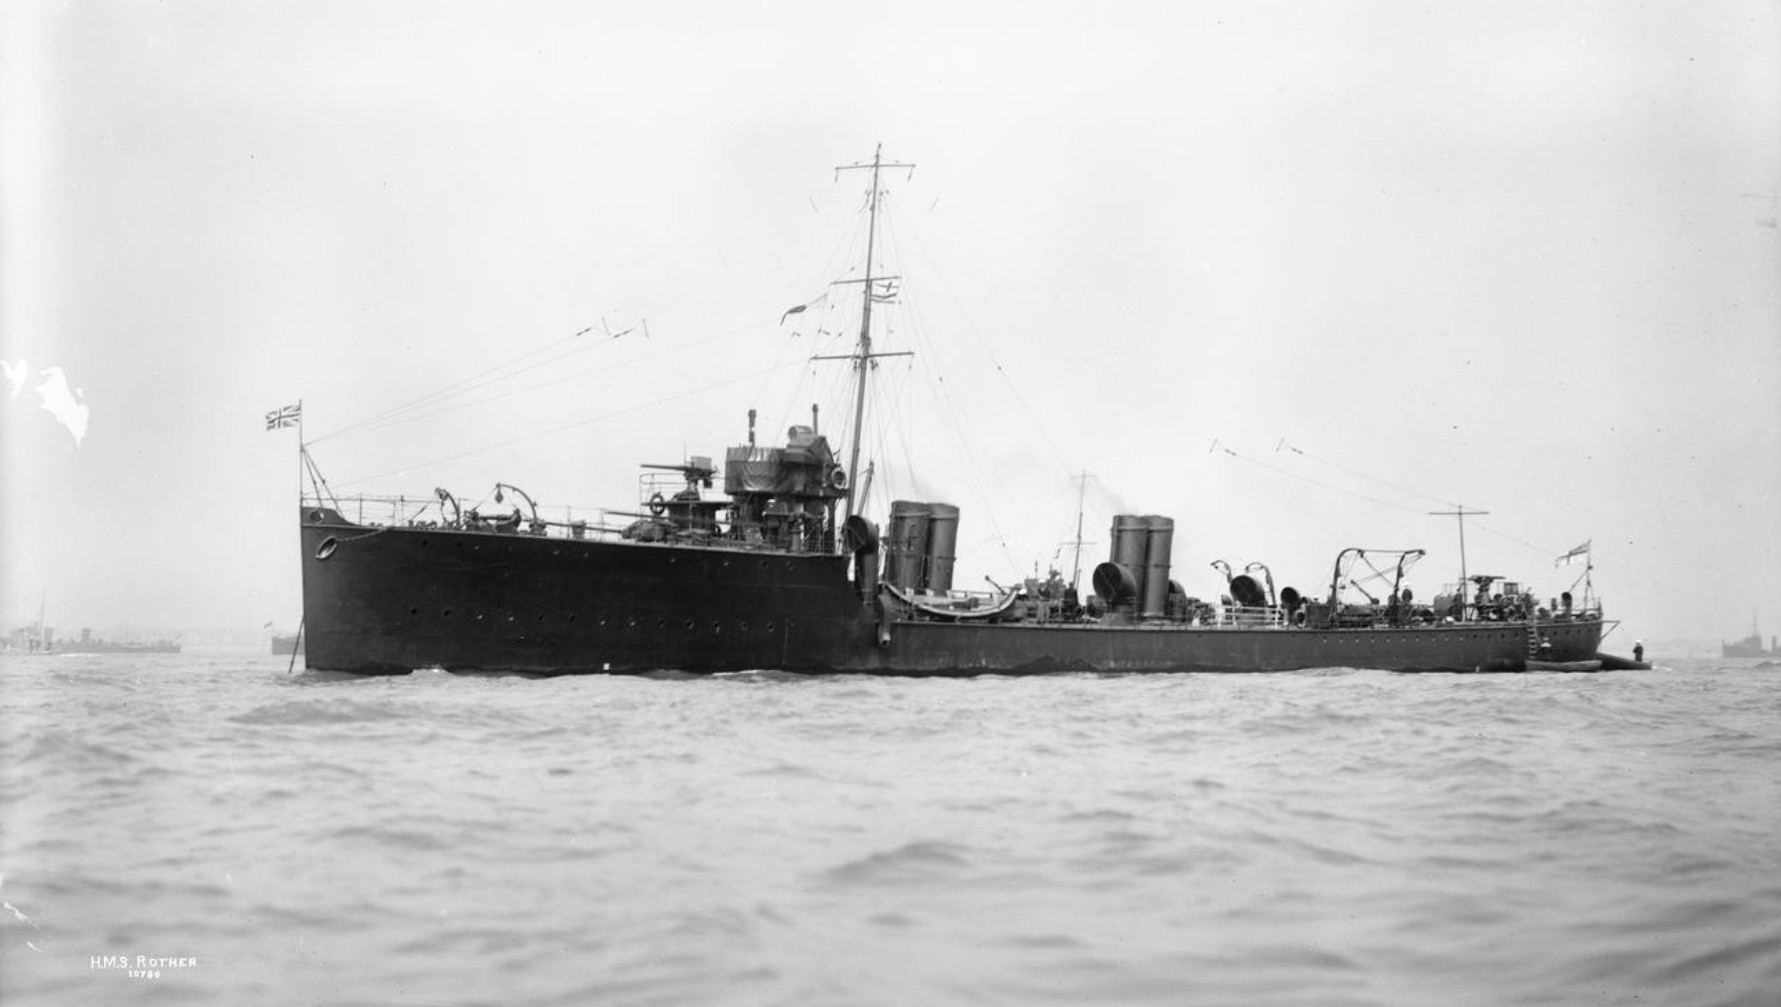 HMS Rother